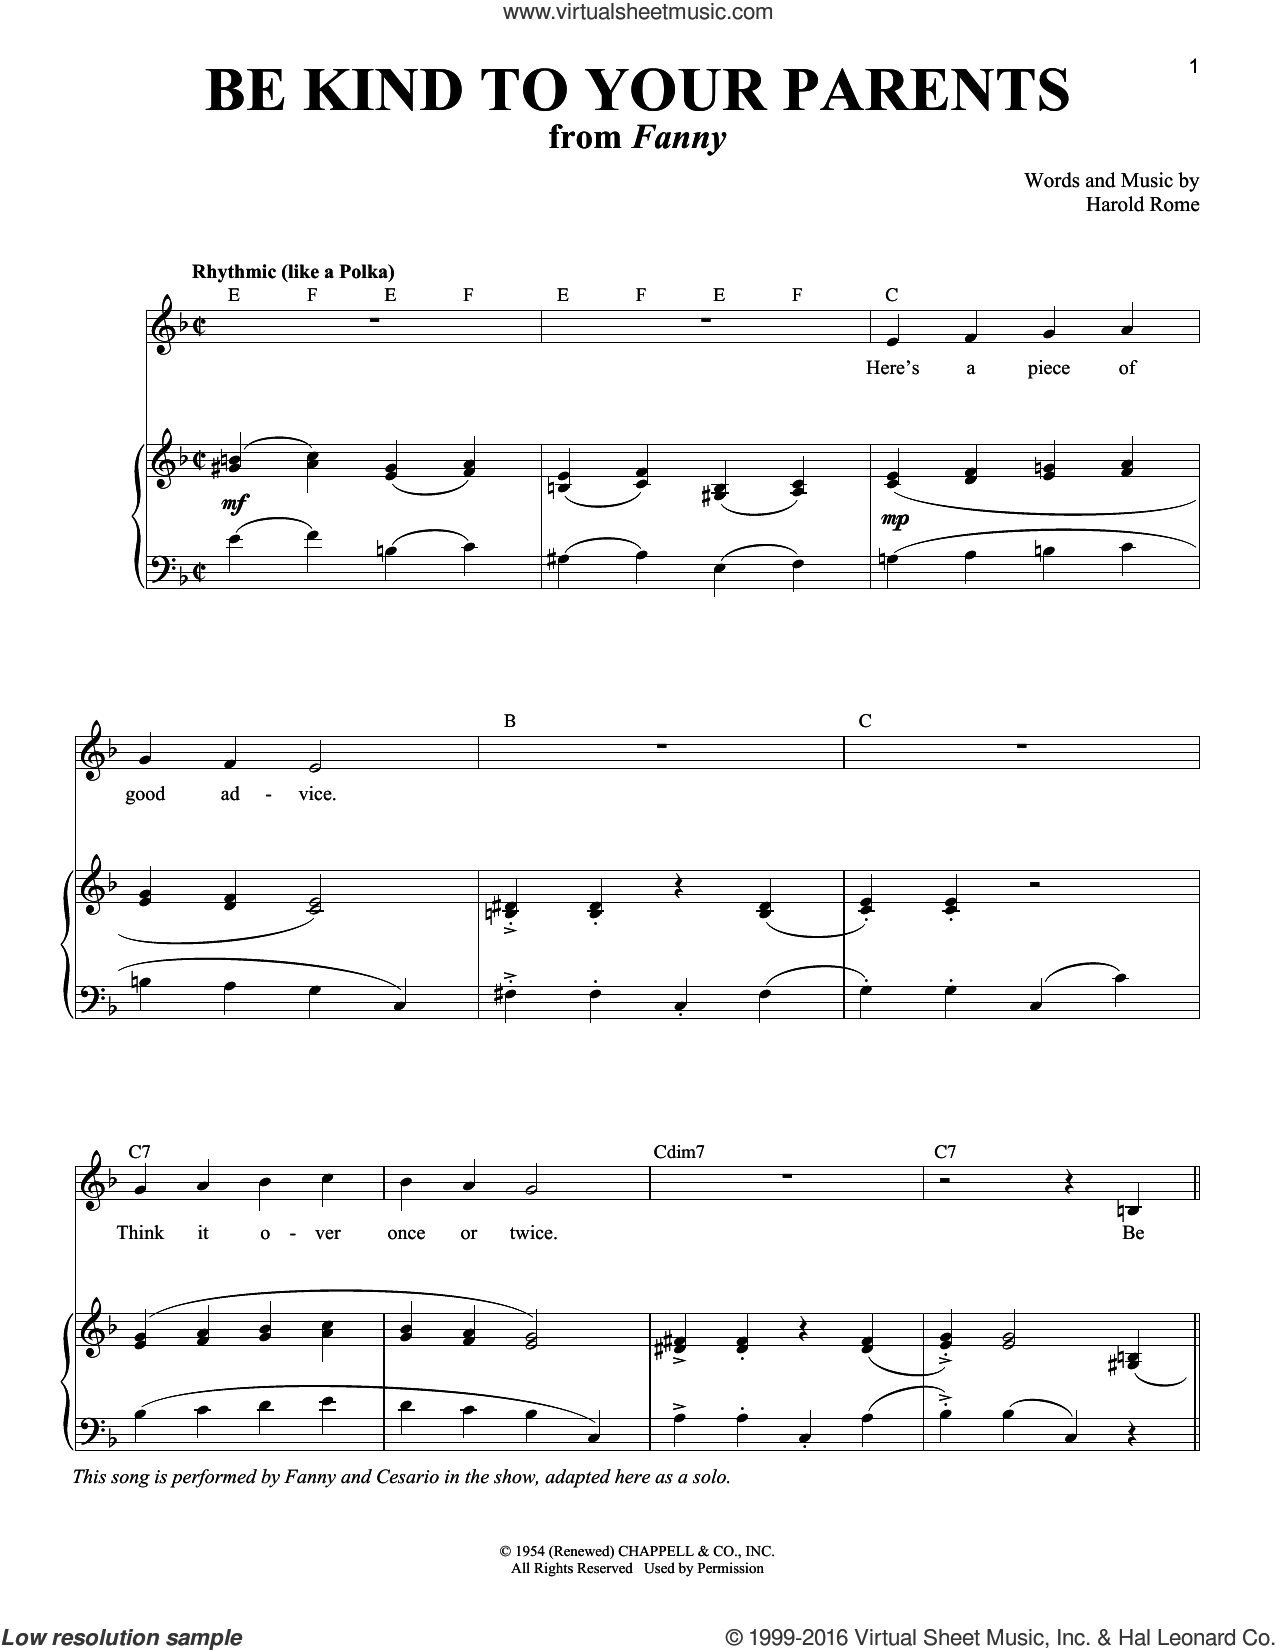 Be Kind To Your Parents sheet music for voice and piano by Harold Rome